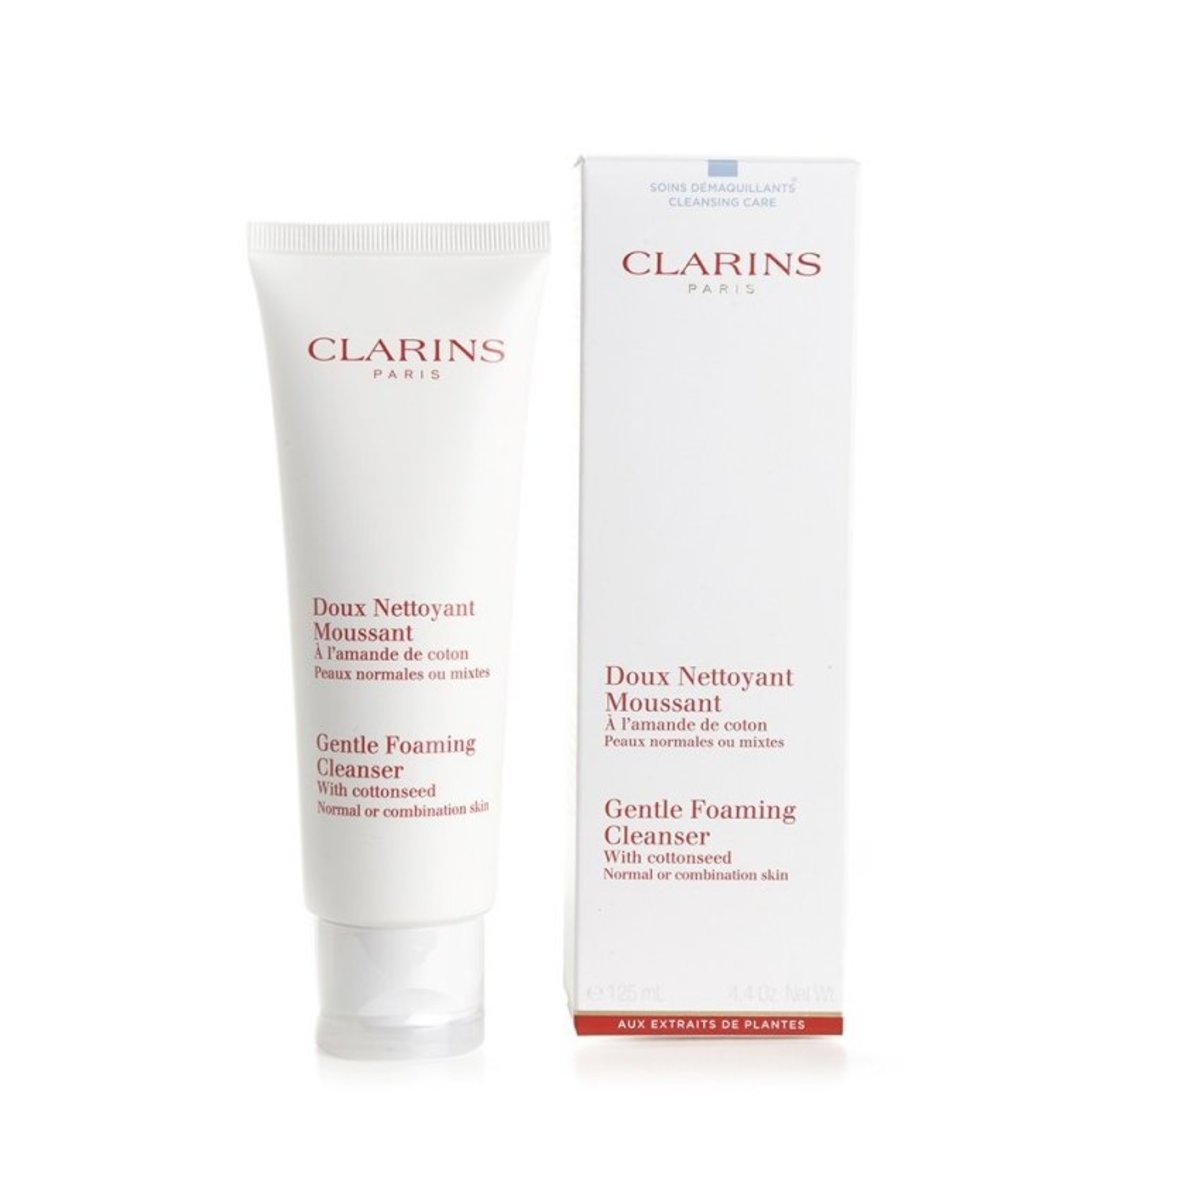 Clarins - Gentle Foaming Cleanser With Cottonseed (Normal or Combination Skin) 125ml  [Parallel Import]